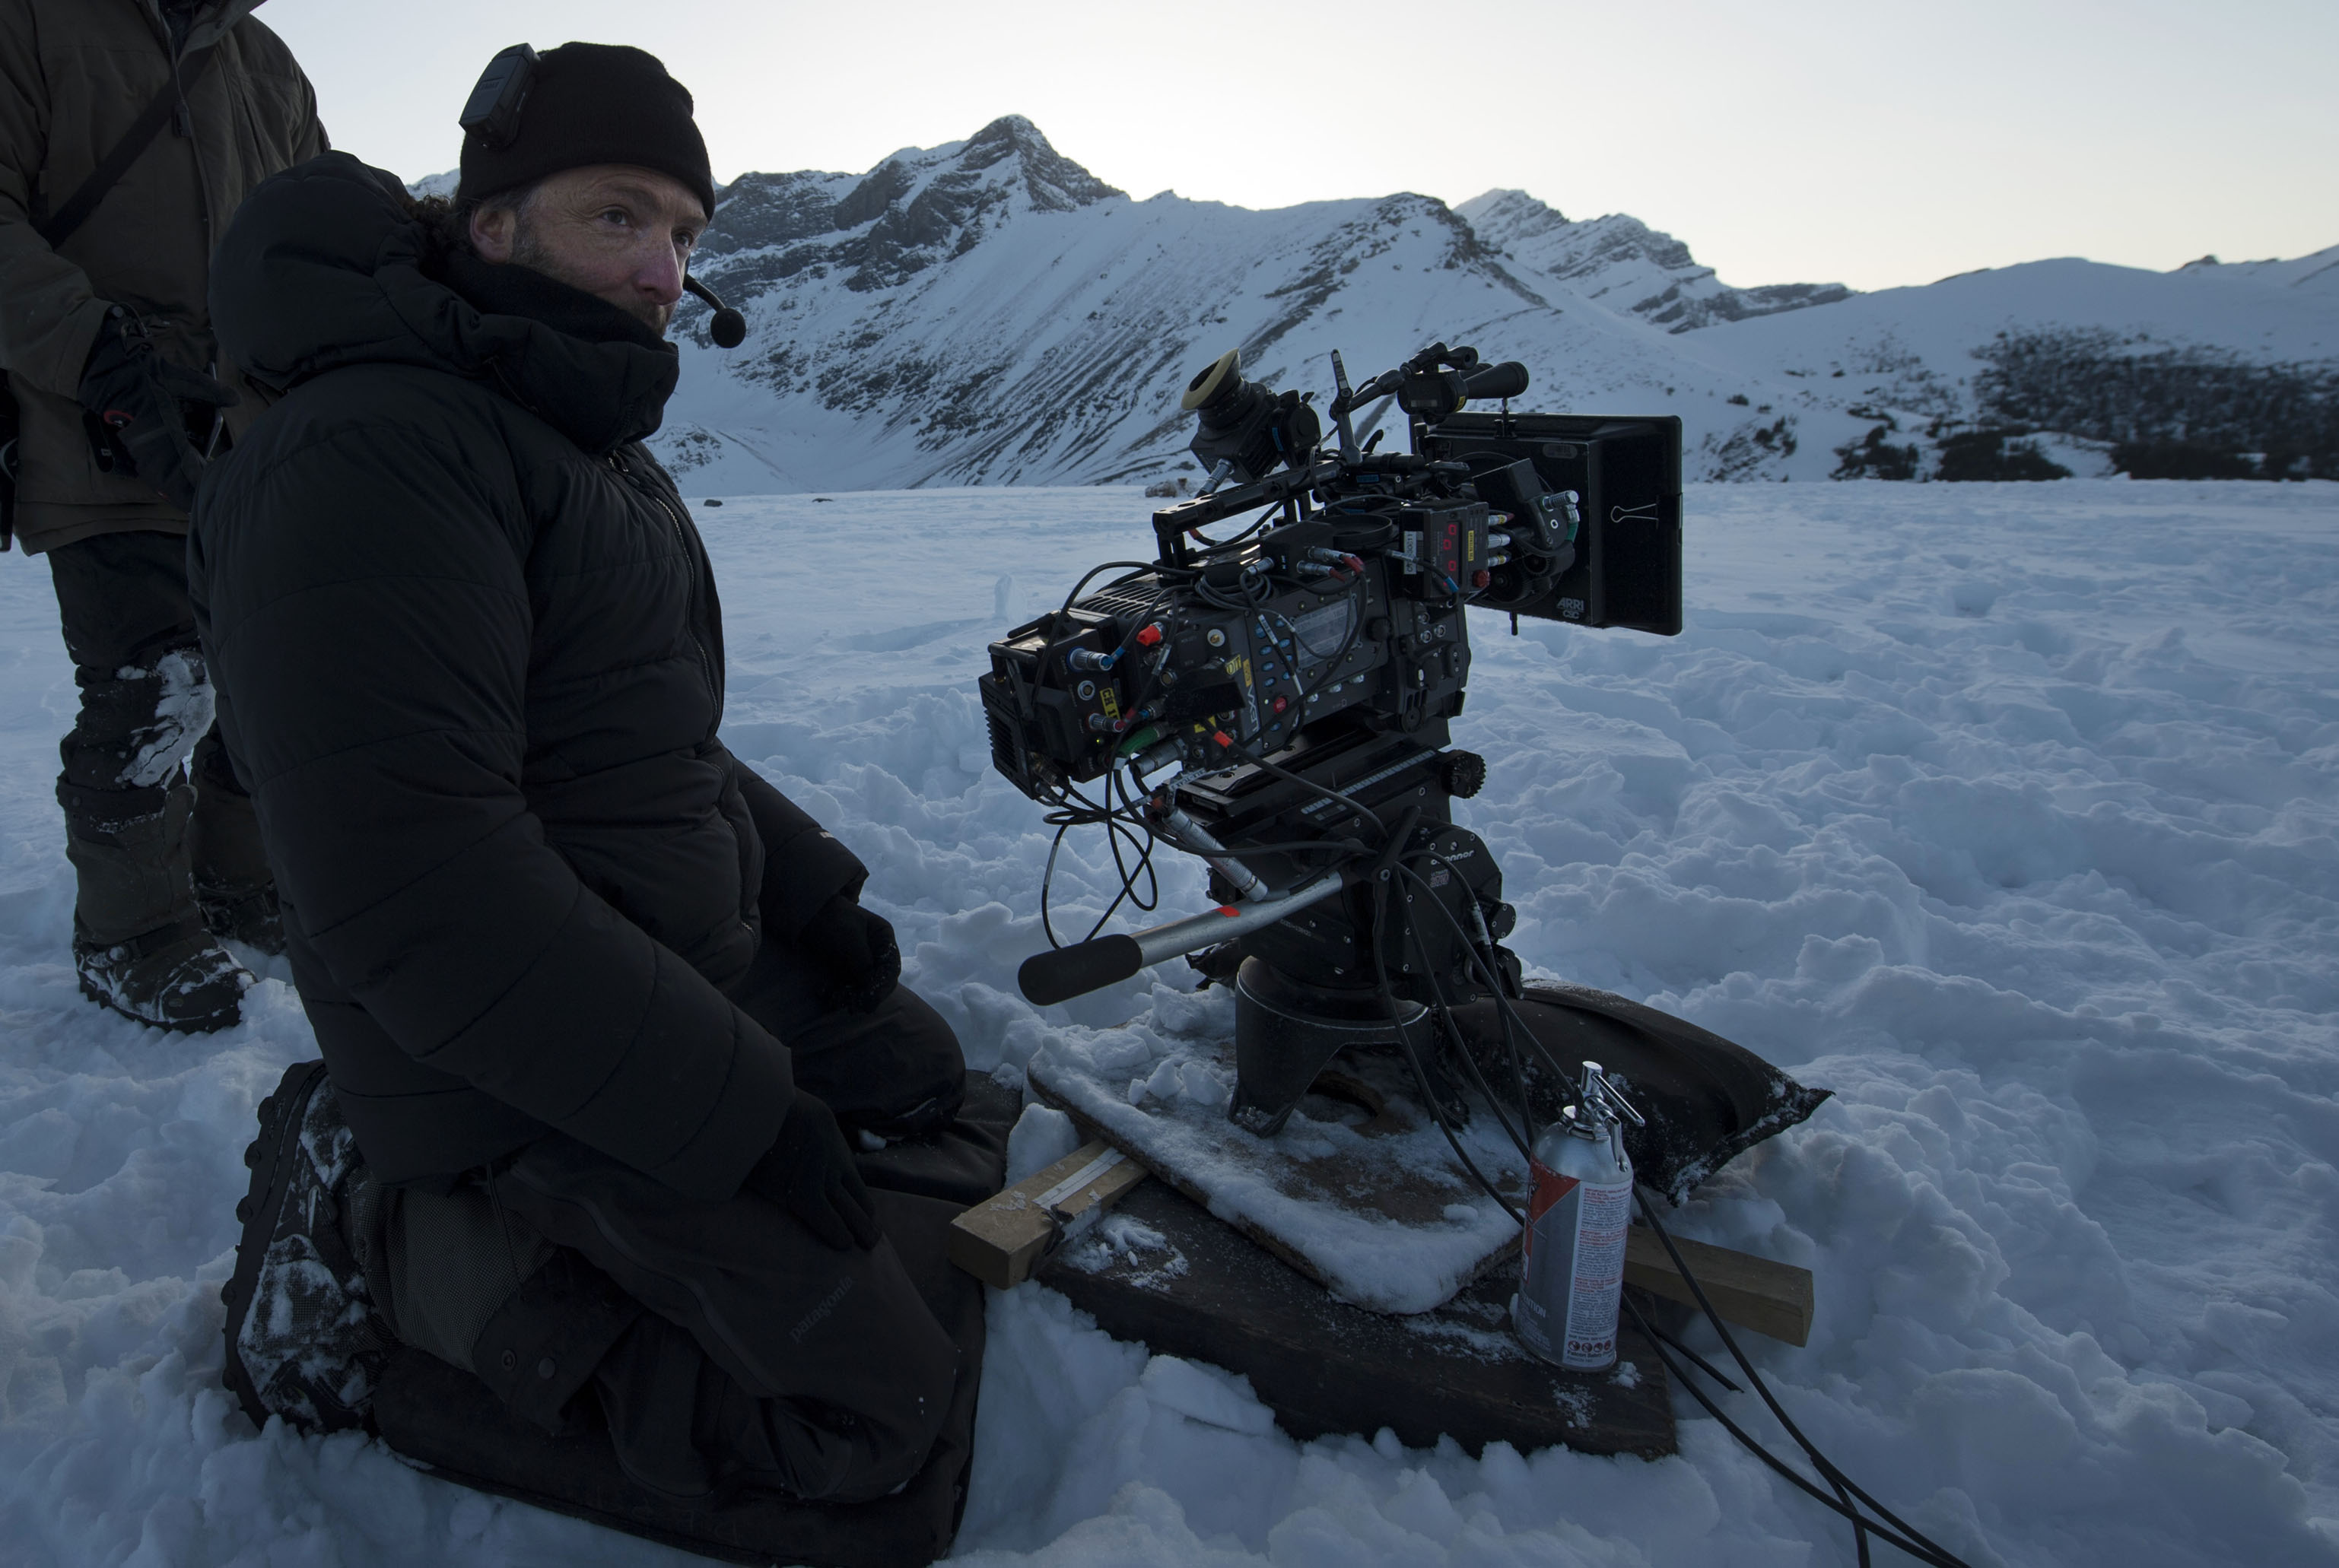 Engrossing Hearing You Say That Mostly Experiencing Advantages Whenshooting Digital Is Where Does Film Fit Into Atthis Emmanuel Gave Me Something I Could Never Have Done dpreview Emmanuel Lubezki Movies